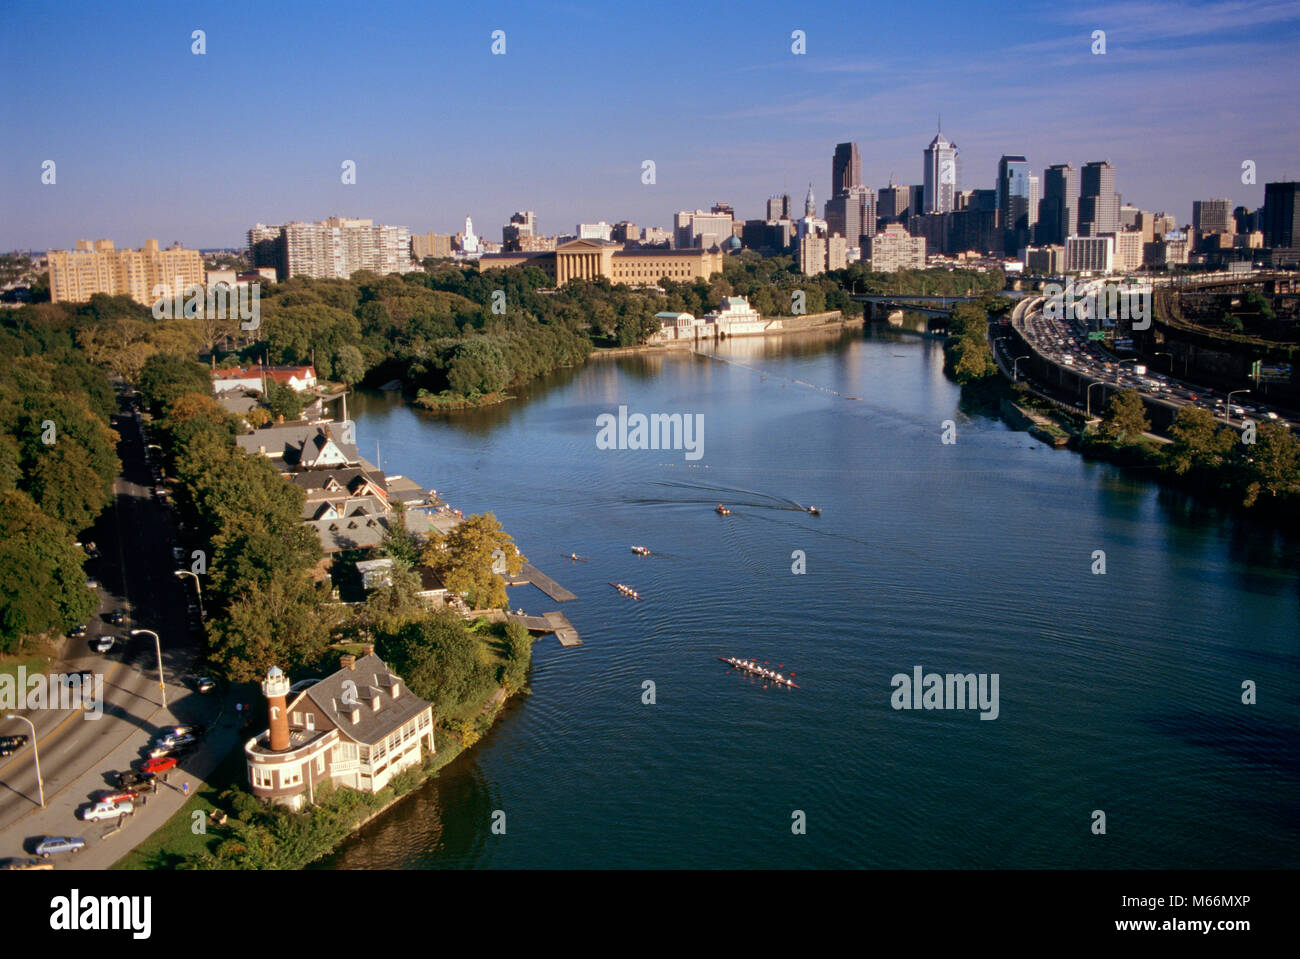 1990s 1994 AERIAL VIEW OF SCHUYLKILL RIVER AND PHILADELPHIA PA USA - kp6141 DEG002 HARS SCULLING EXTERIOR NOBODY - Stock Image